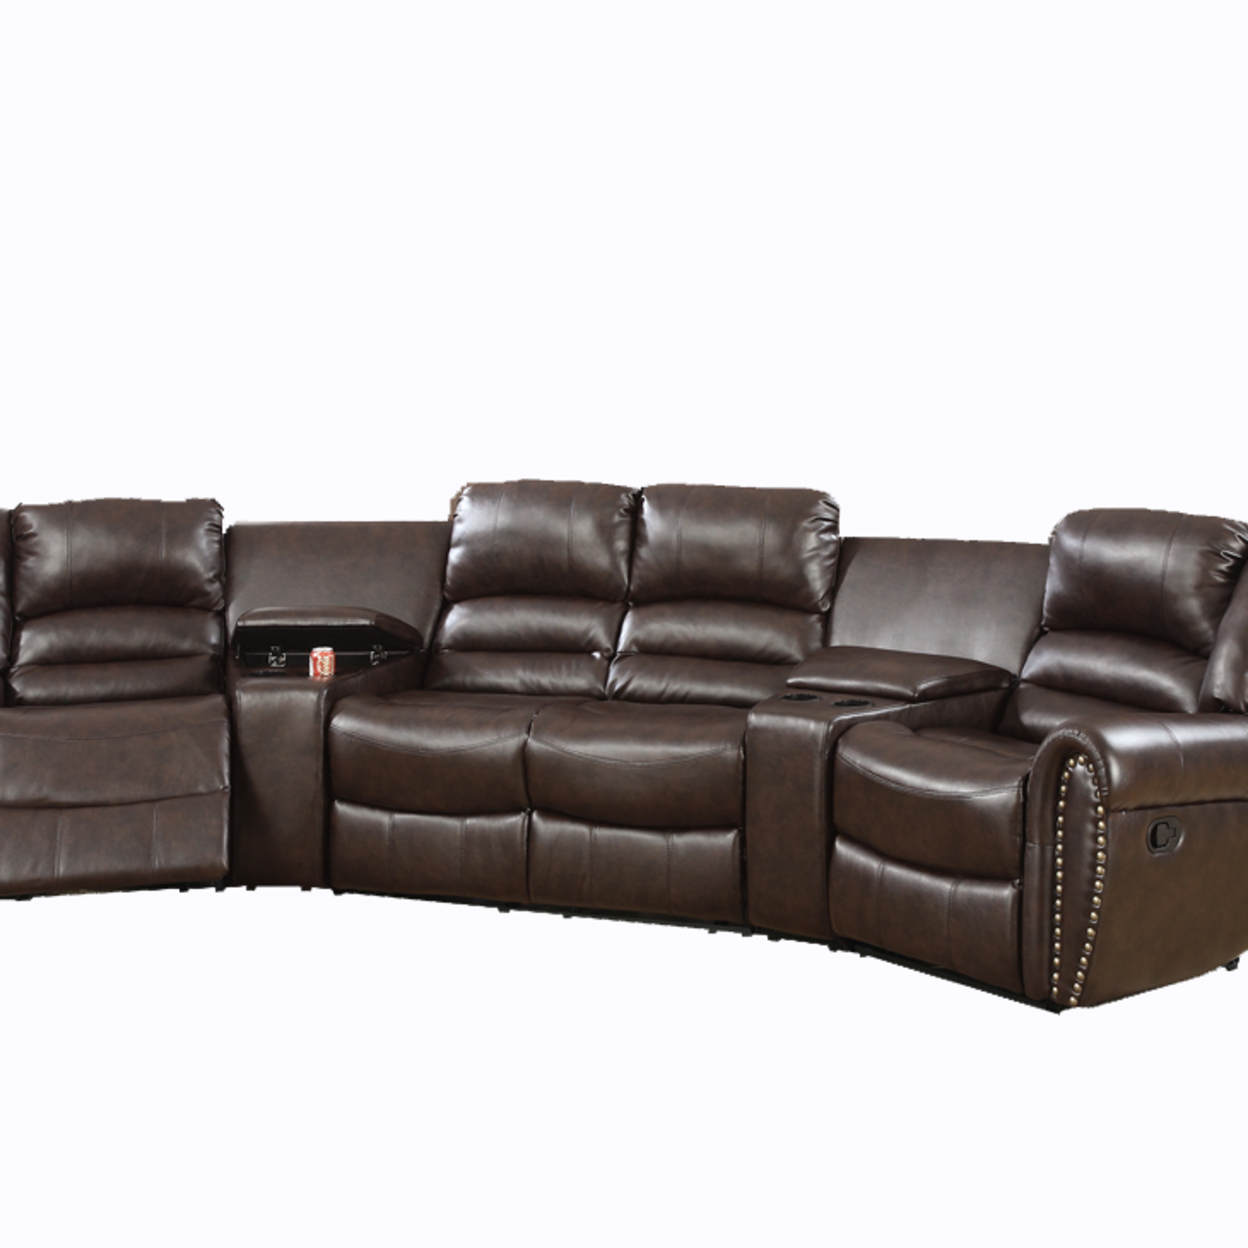 Bonded Leather Motional Home Theater 5 Piece Sectional Brown 5a7497a9e22461371f2b9ba2